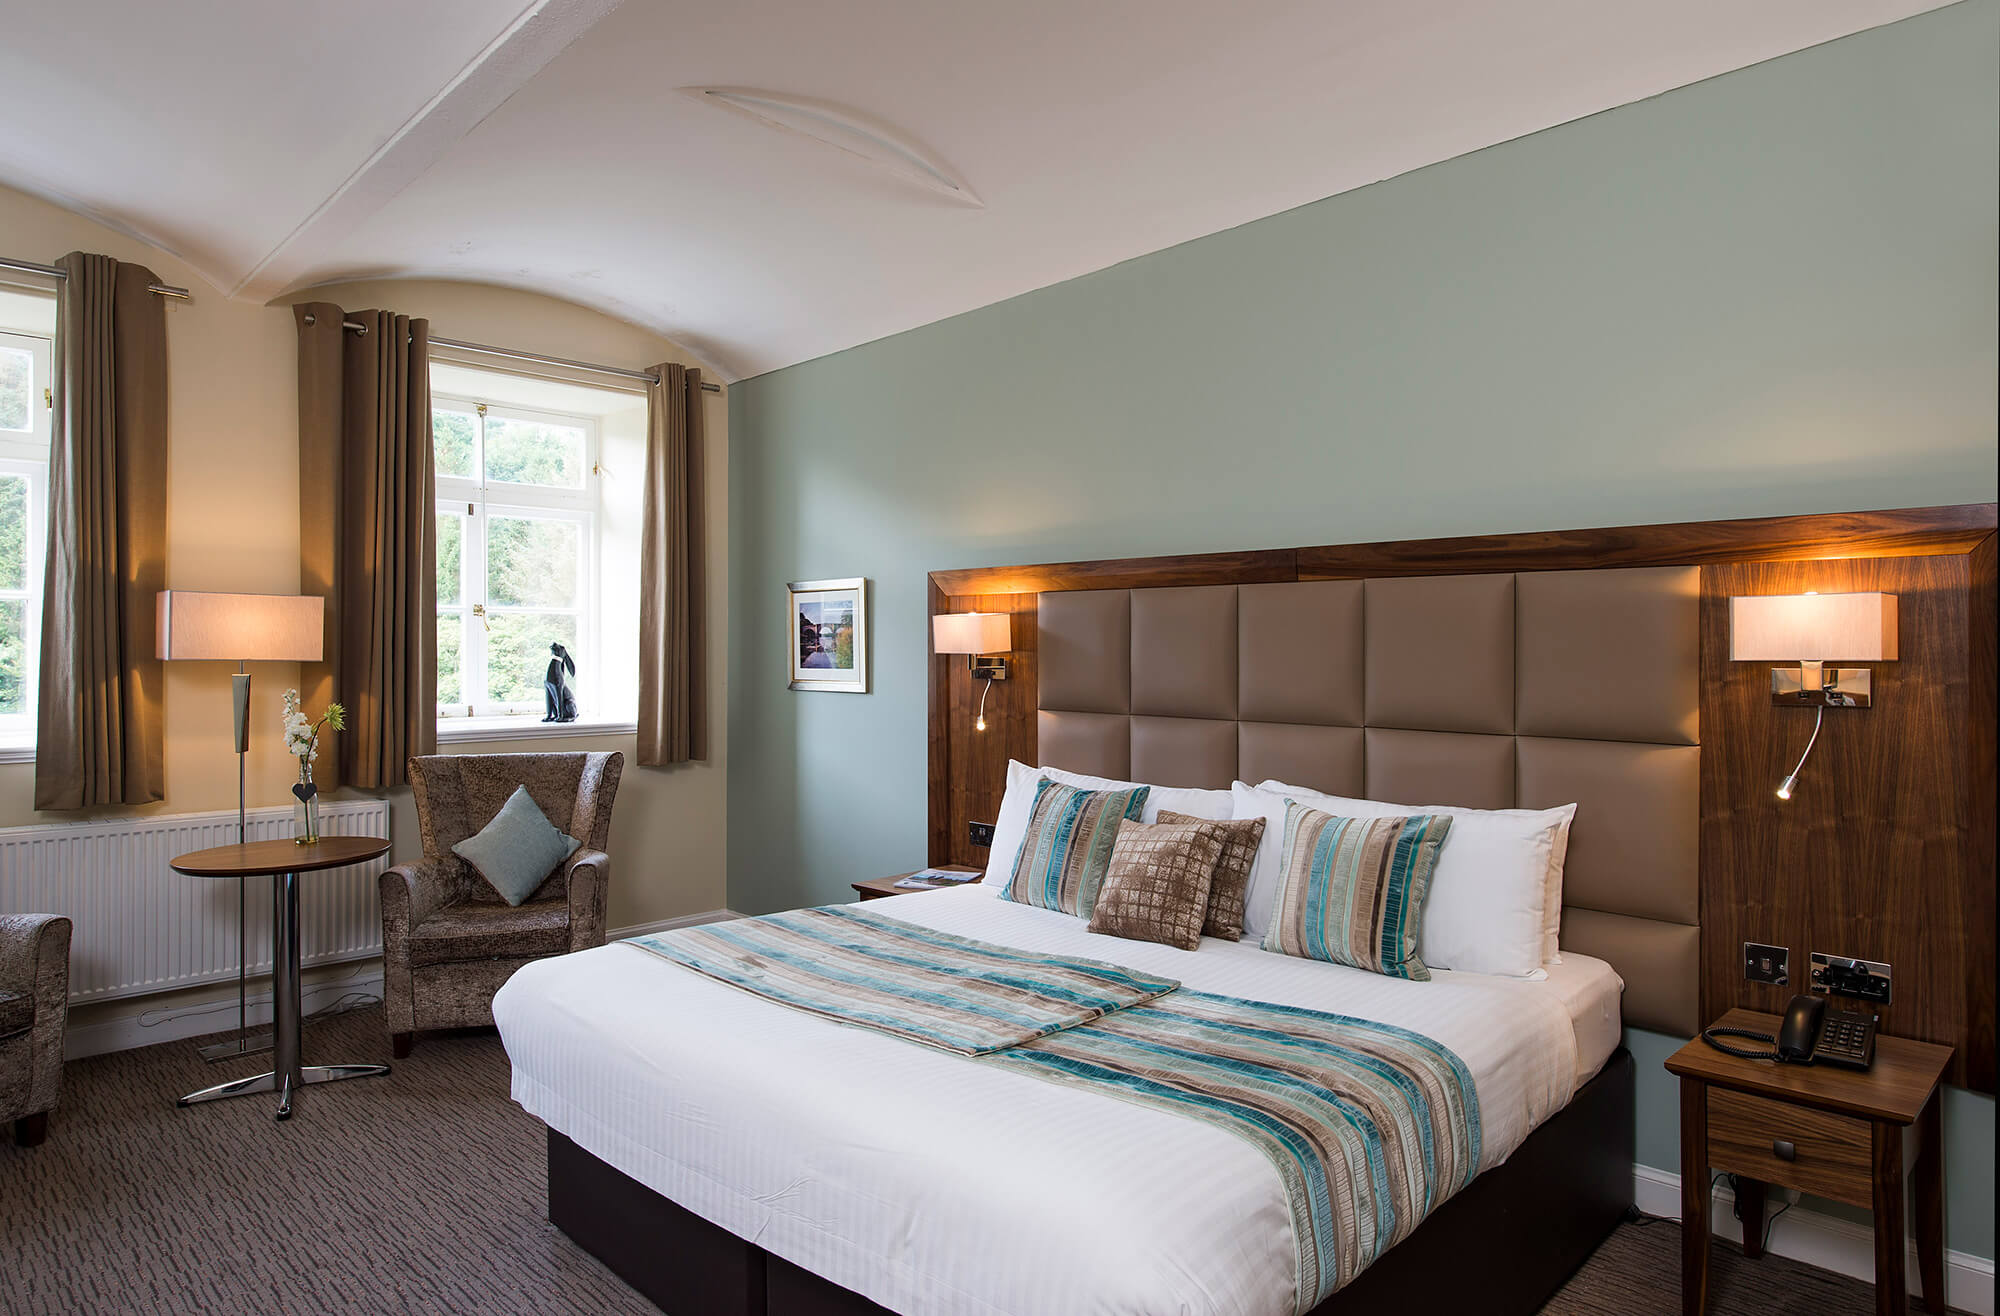 New Lanark Hotel Accommodation